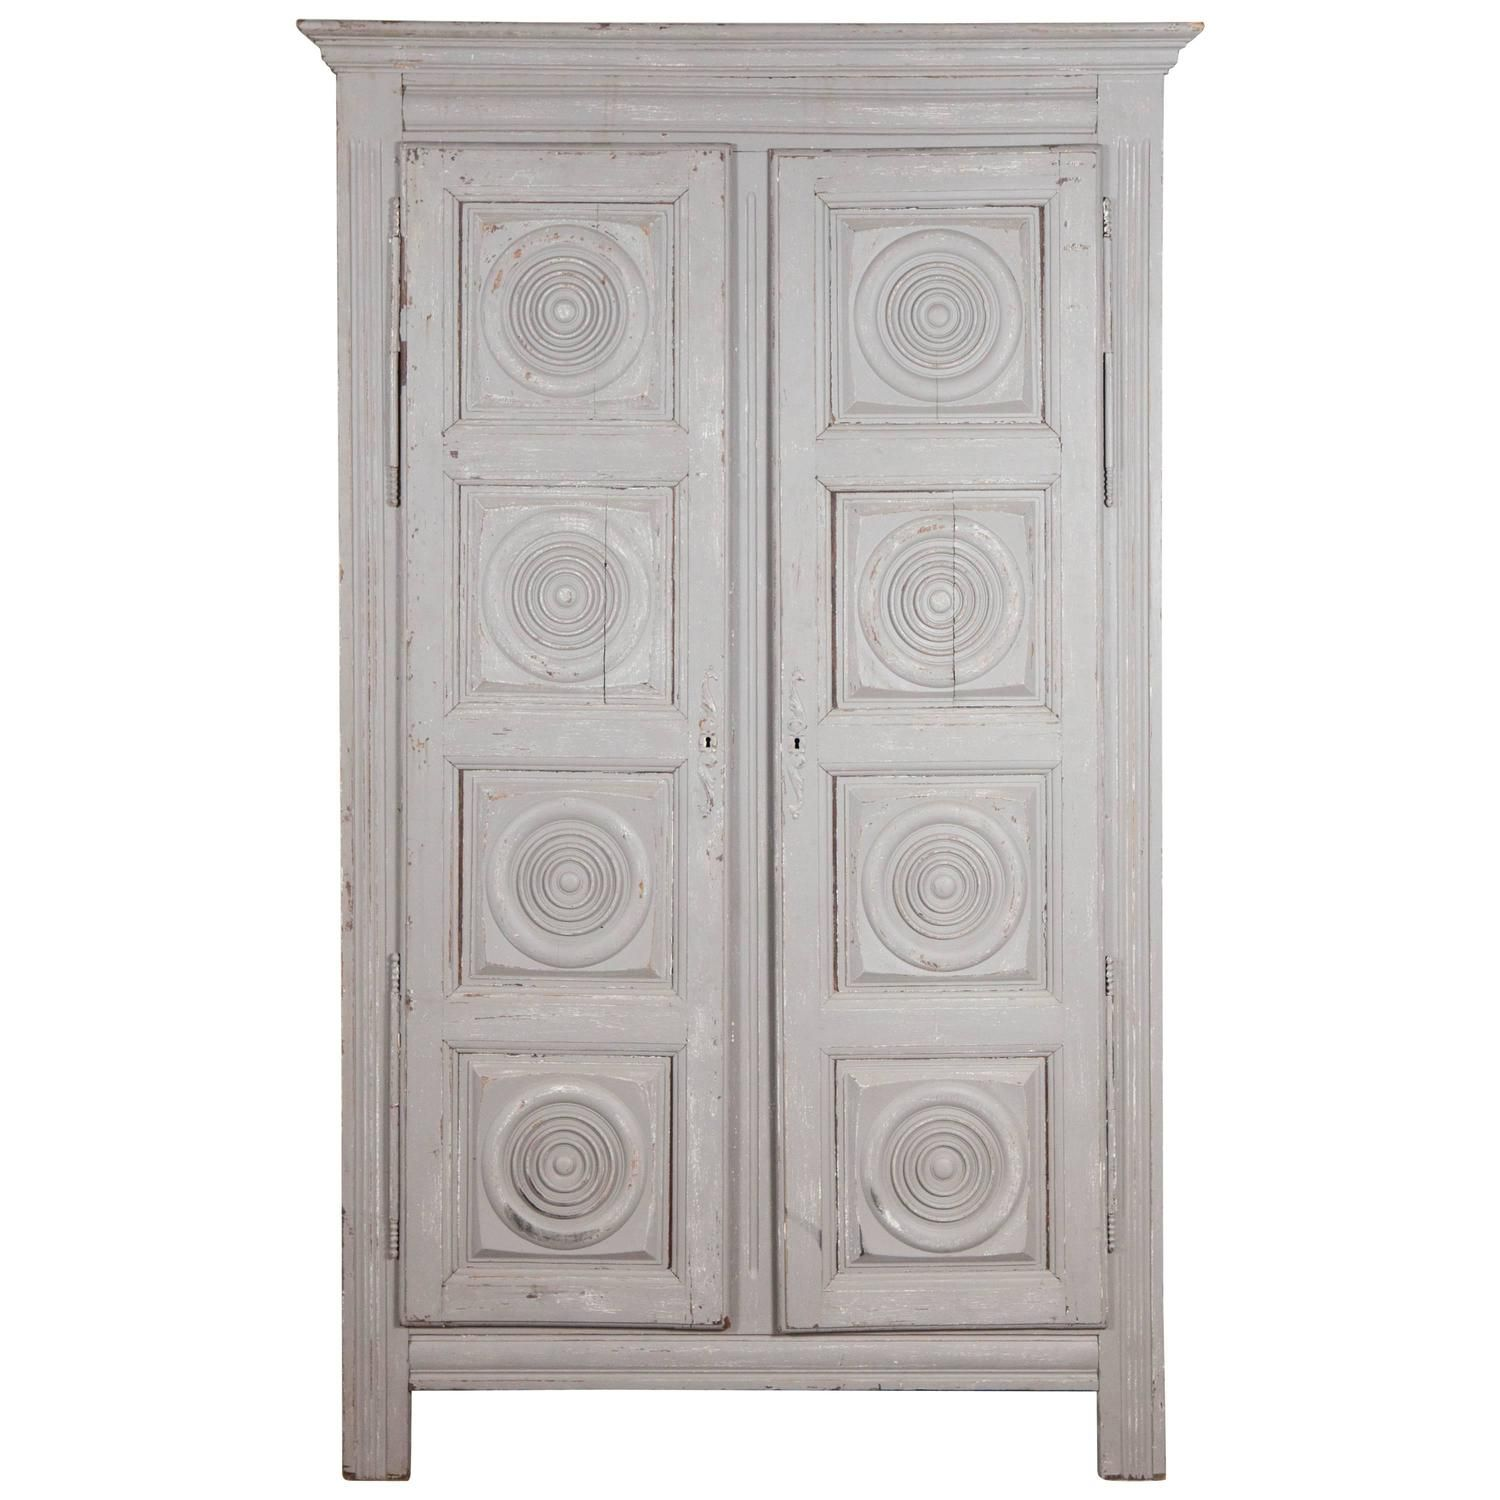 osaka for beds finish oak list wardrobes furniture category mirror cousins and fcp bedroom sale double wardrobe